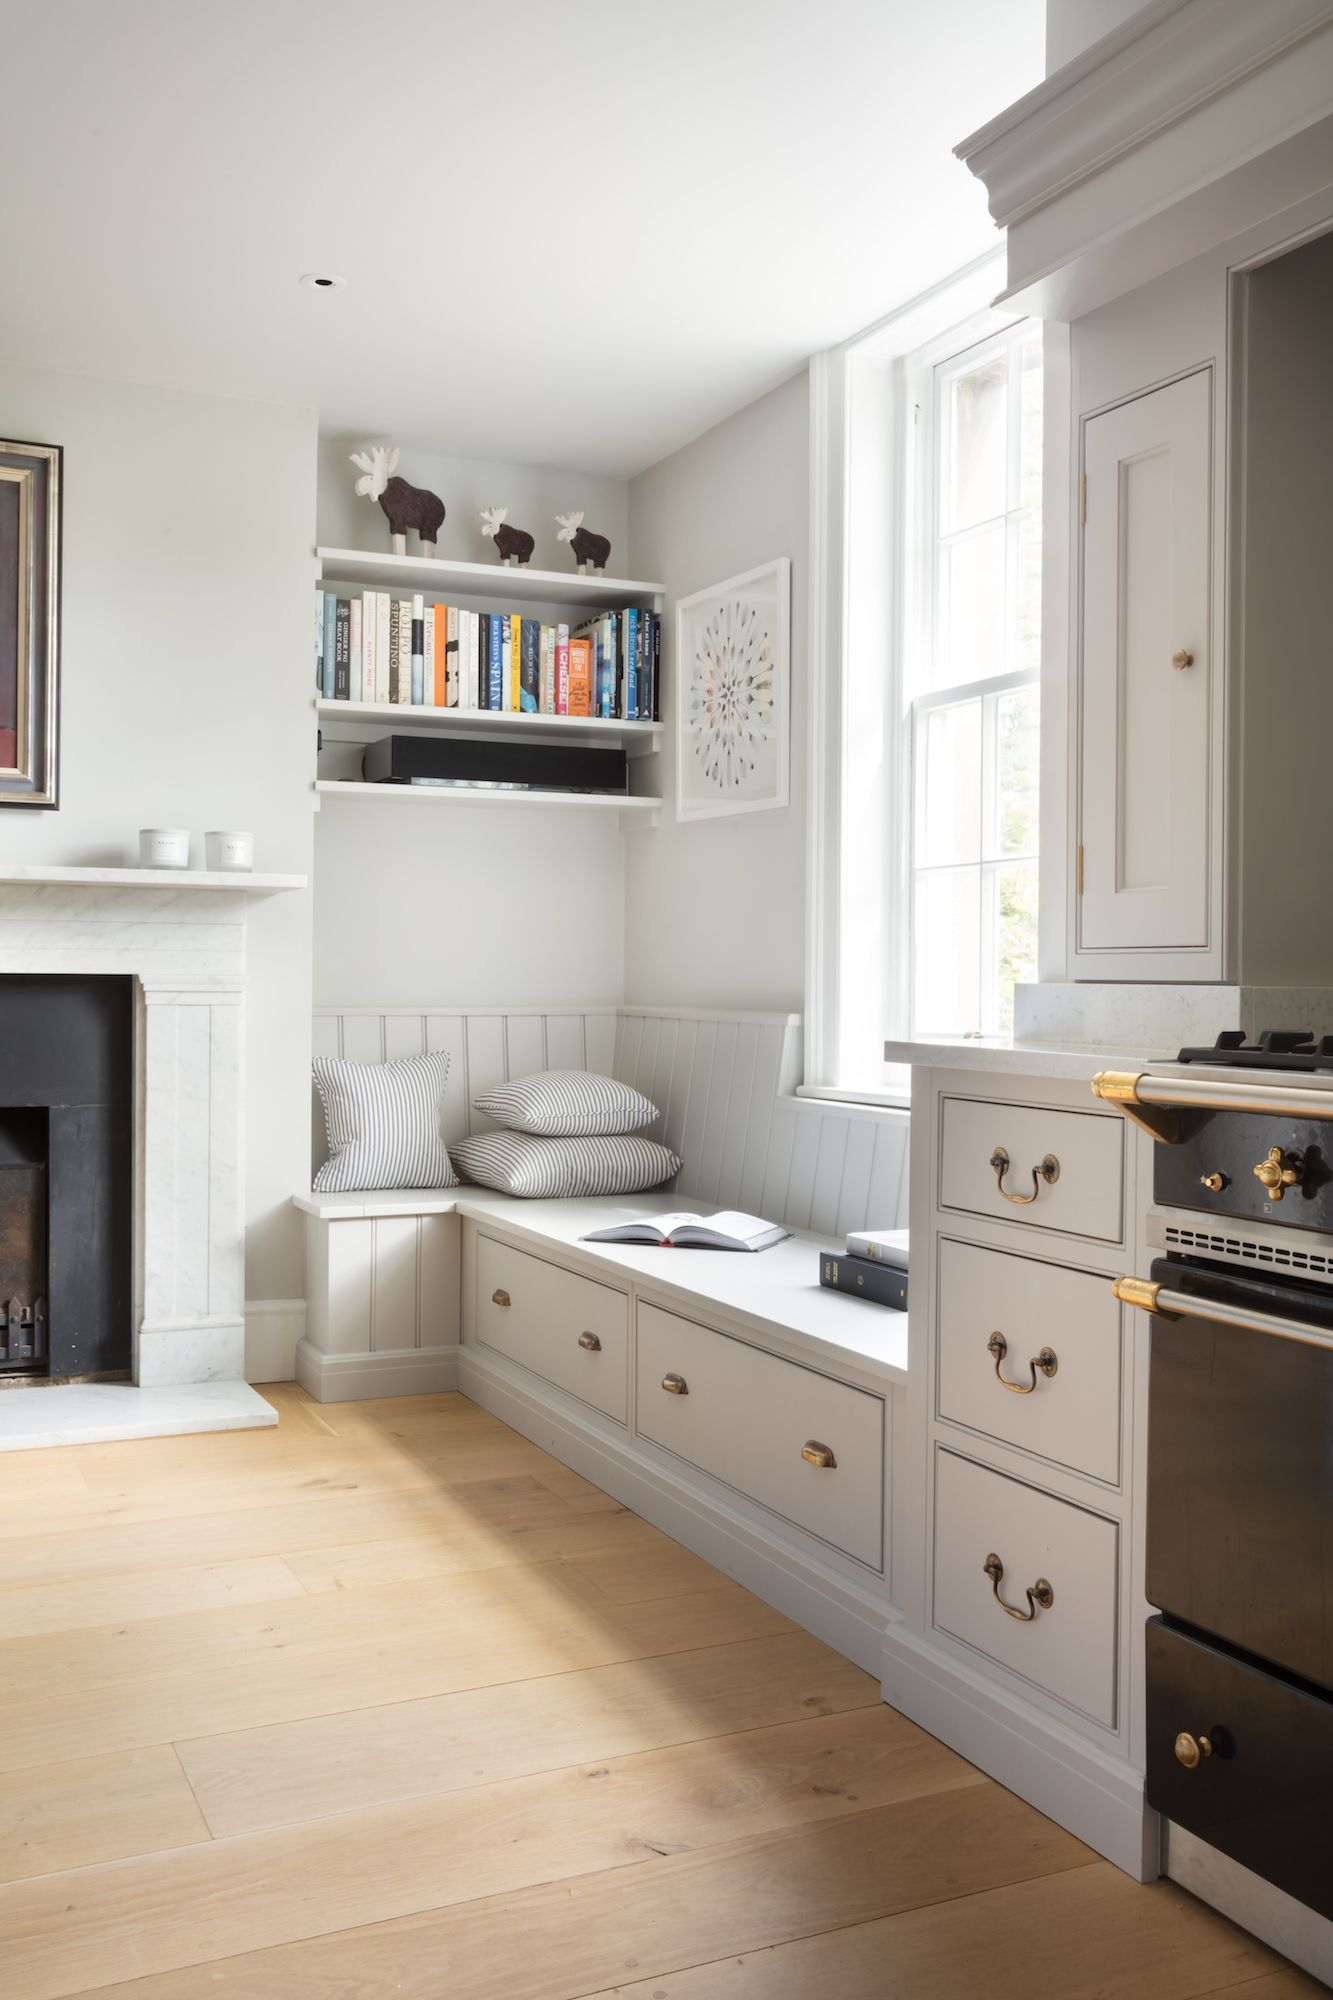 Super Georgian Farmhouse Kitchen Hampshire Humphrey Munson Home Interior And Landscaping Ologienasavecom